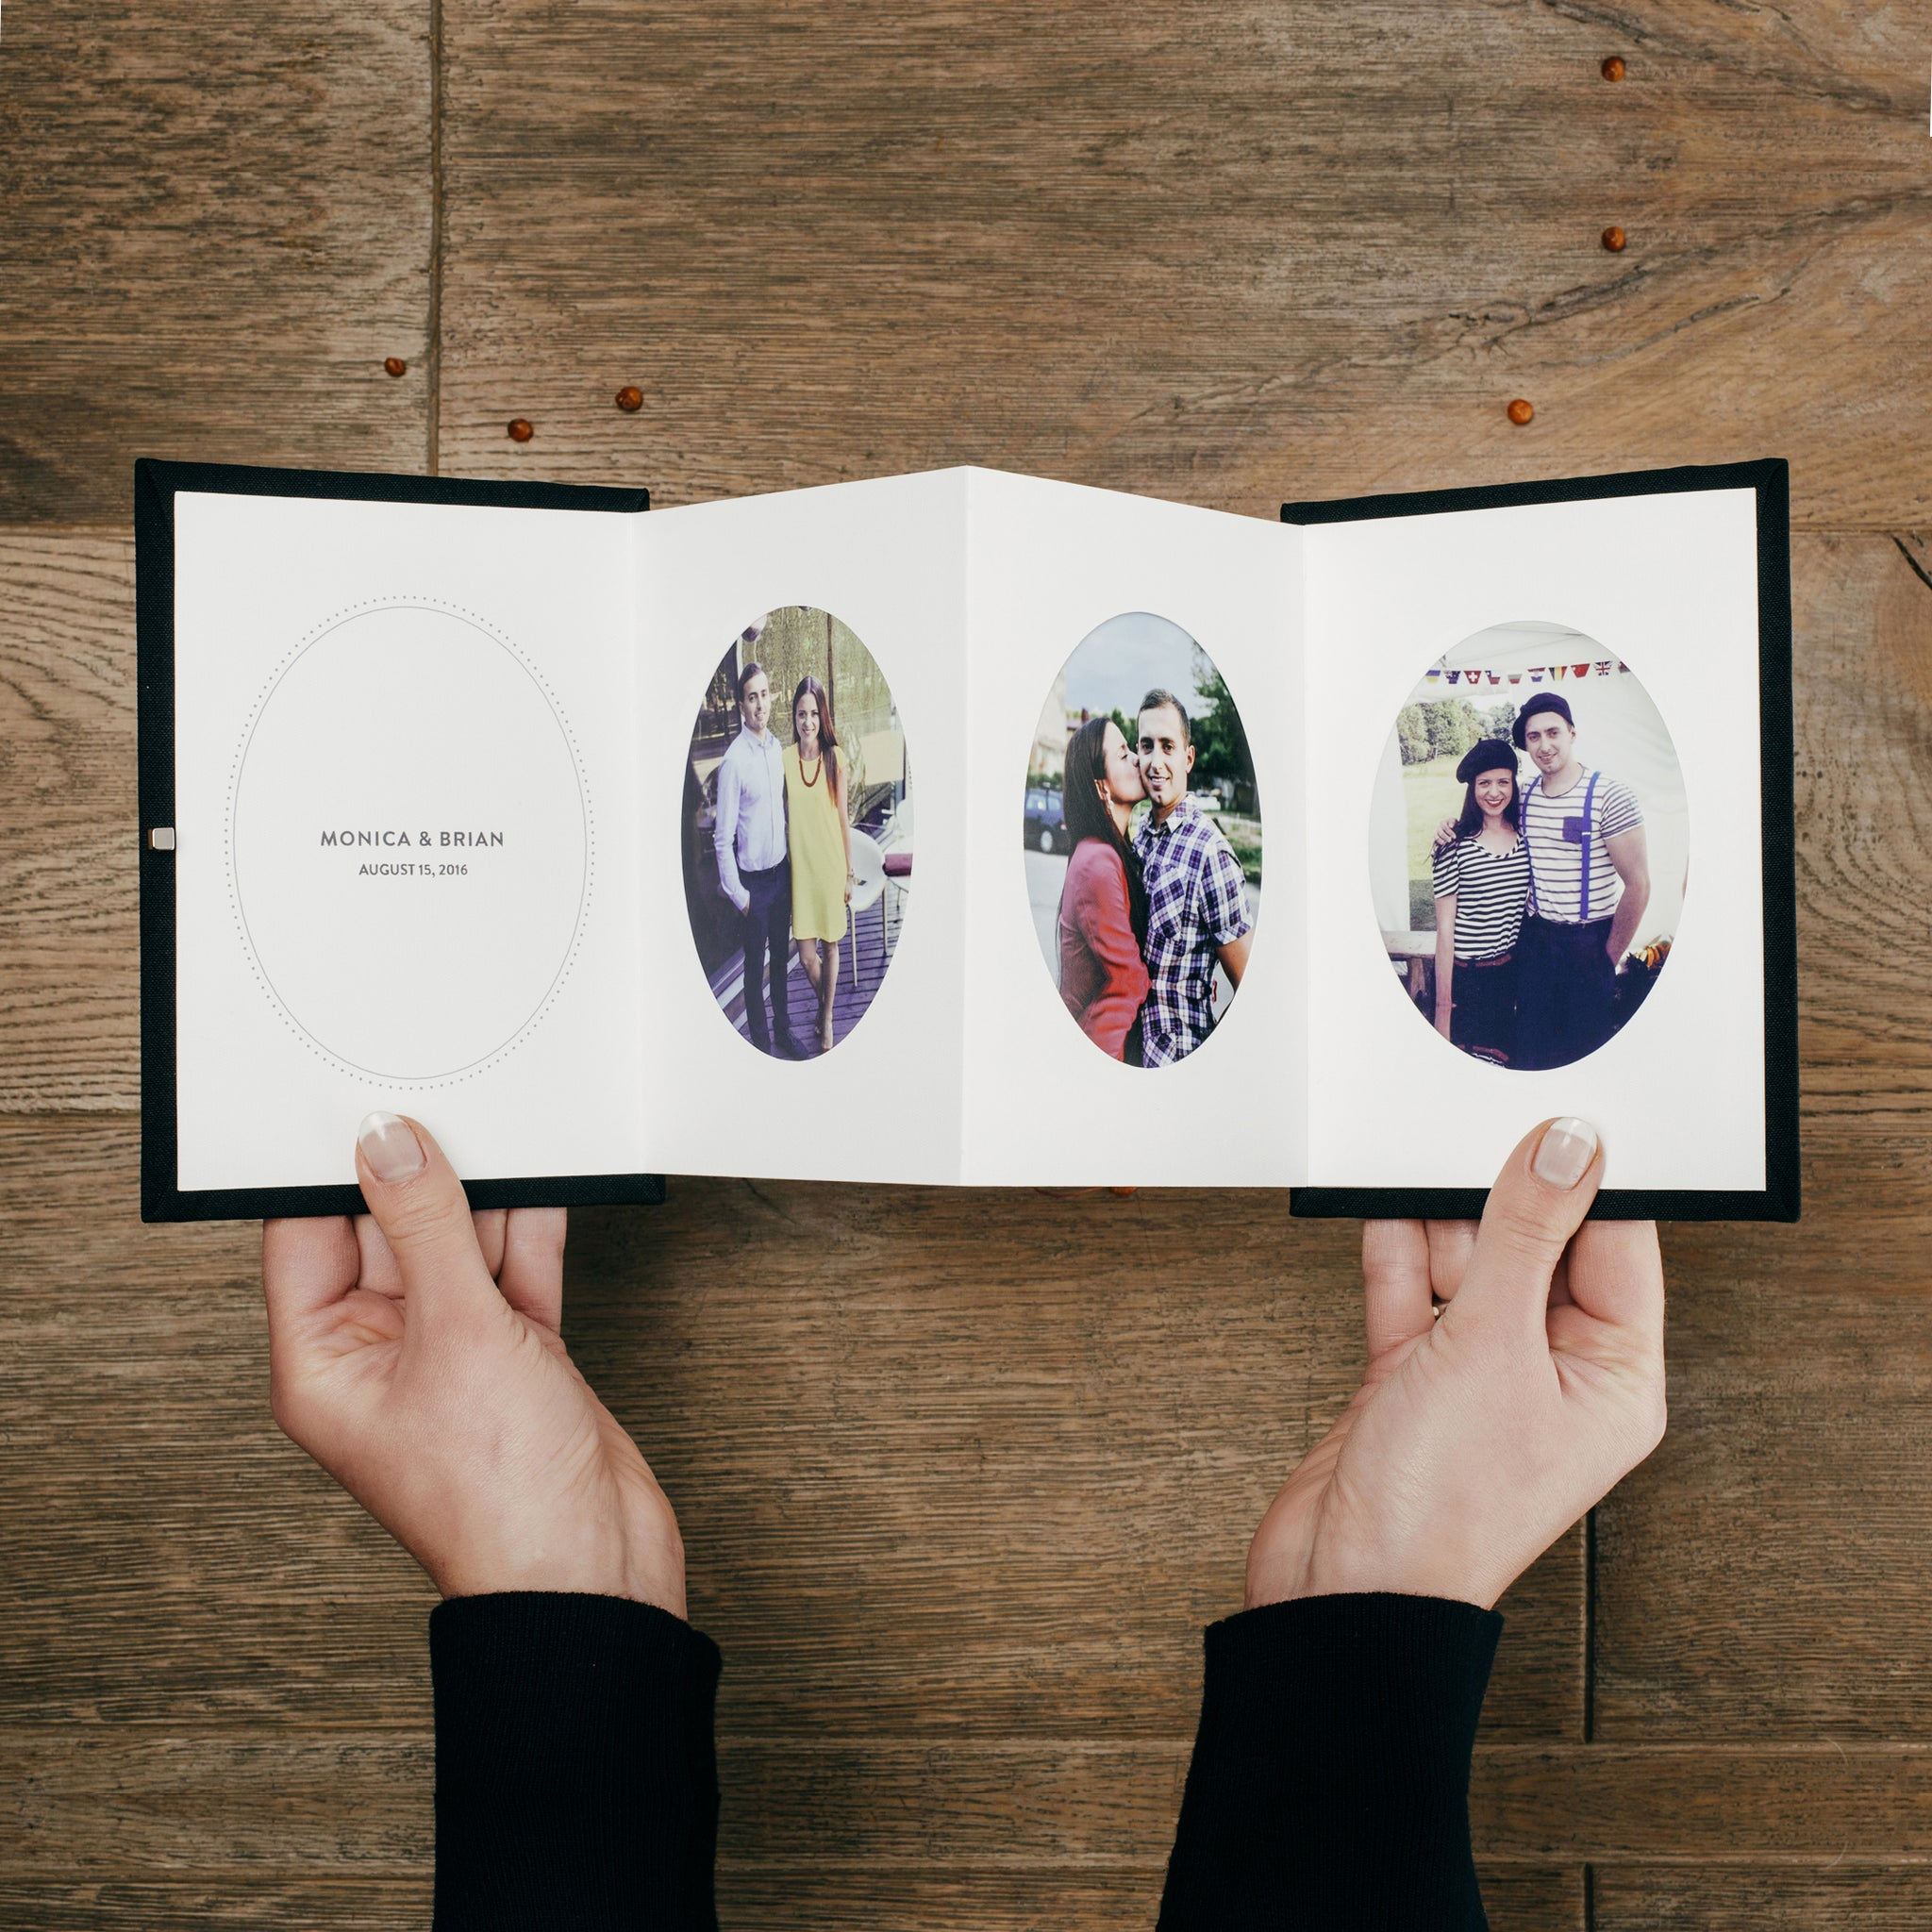 db6338c8e4f24 Memories Booklet Mother of the Bride Gift Parents Thank You Parents ...